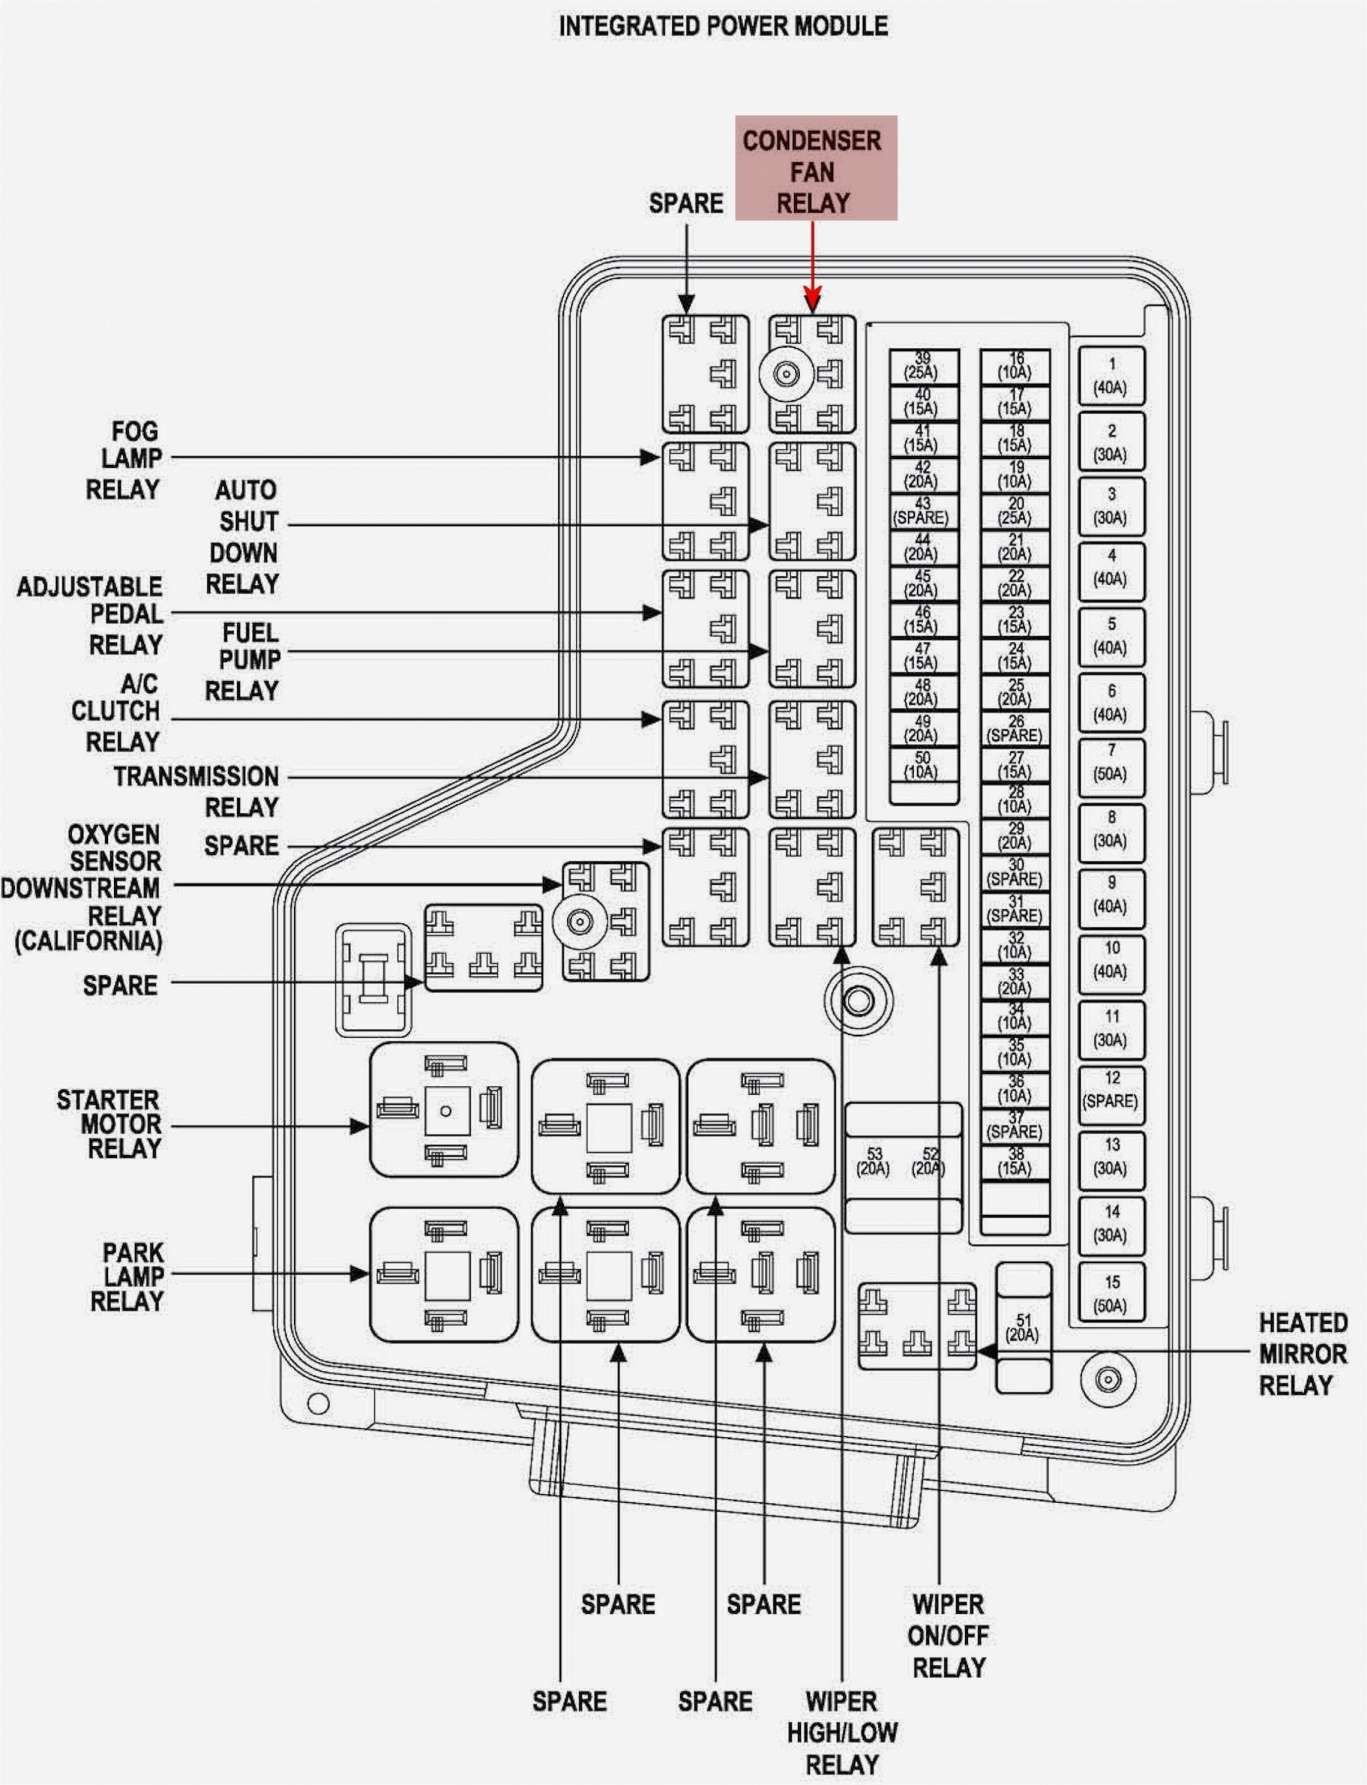 2012 ram 1500 fuse box 17 fuse box diagram 96 ram 1500 truck truck diagram in 2020  17 fuse box diagram 96 ram 1500 truck